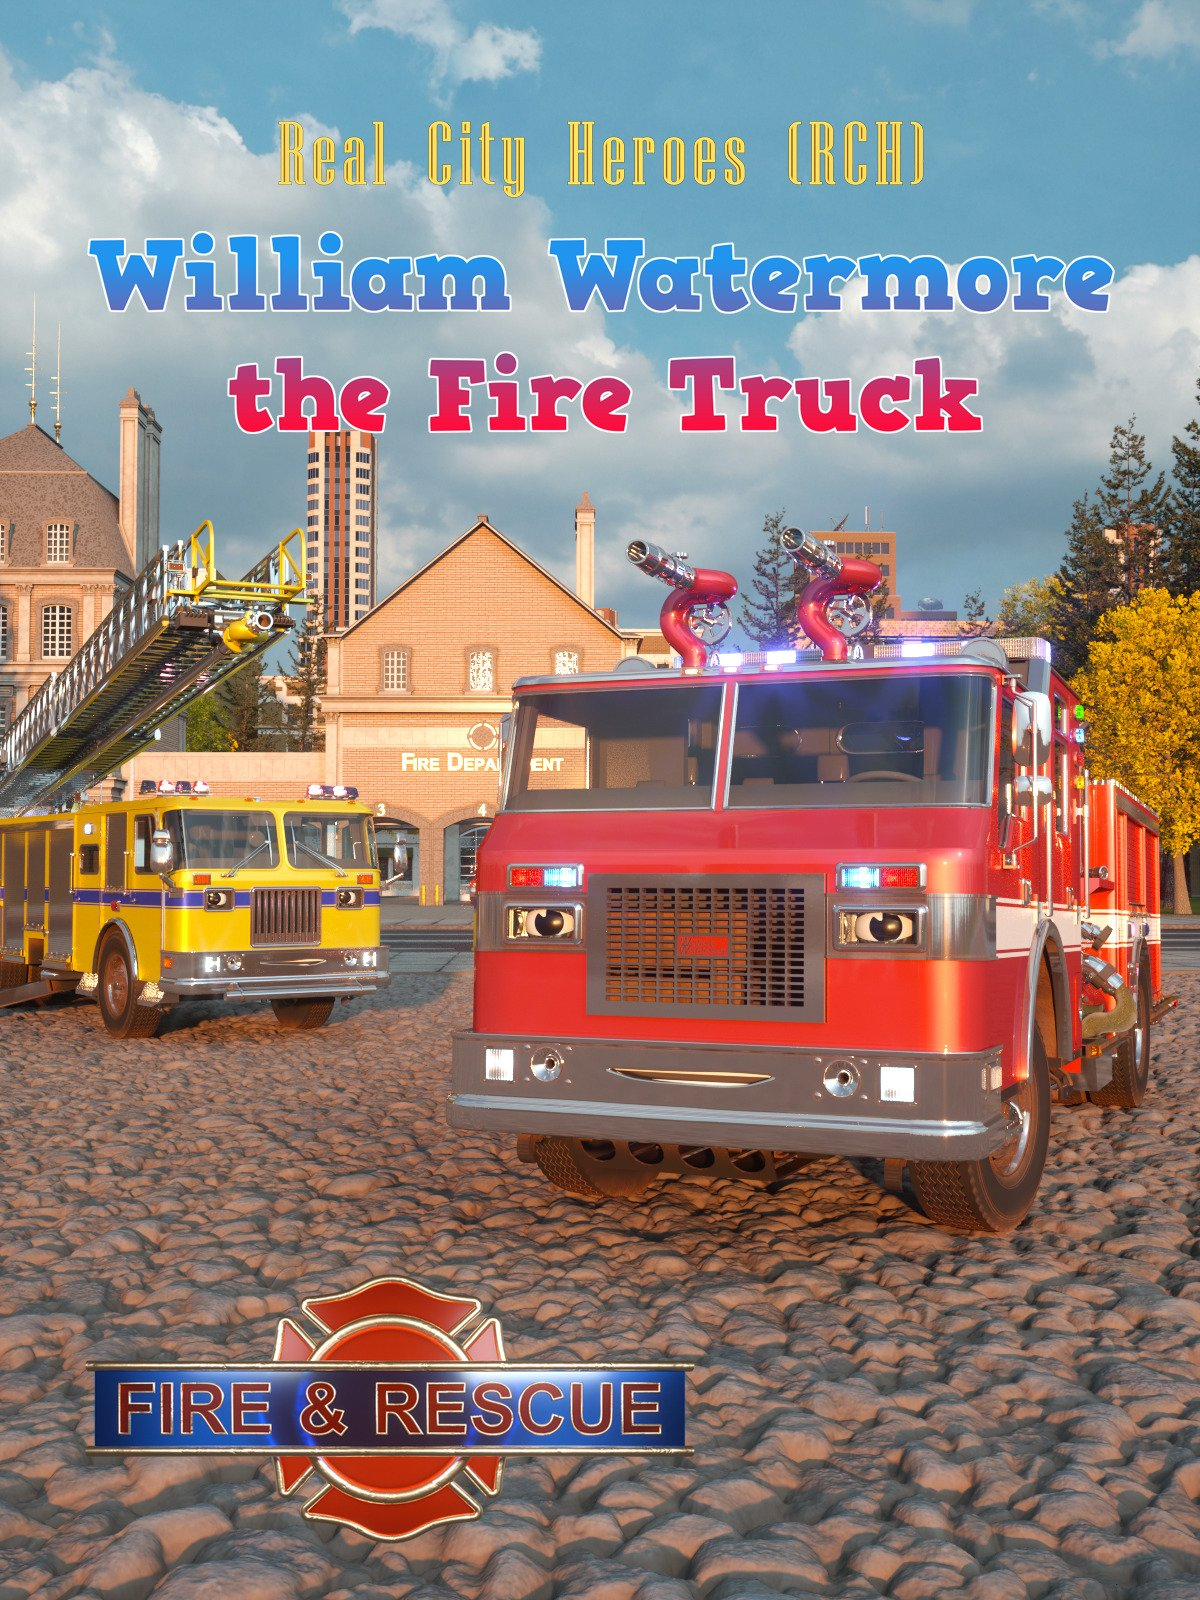 William Watermore the Fire Truck